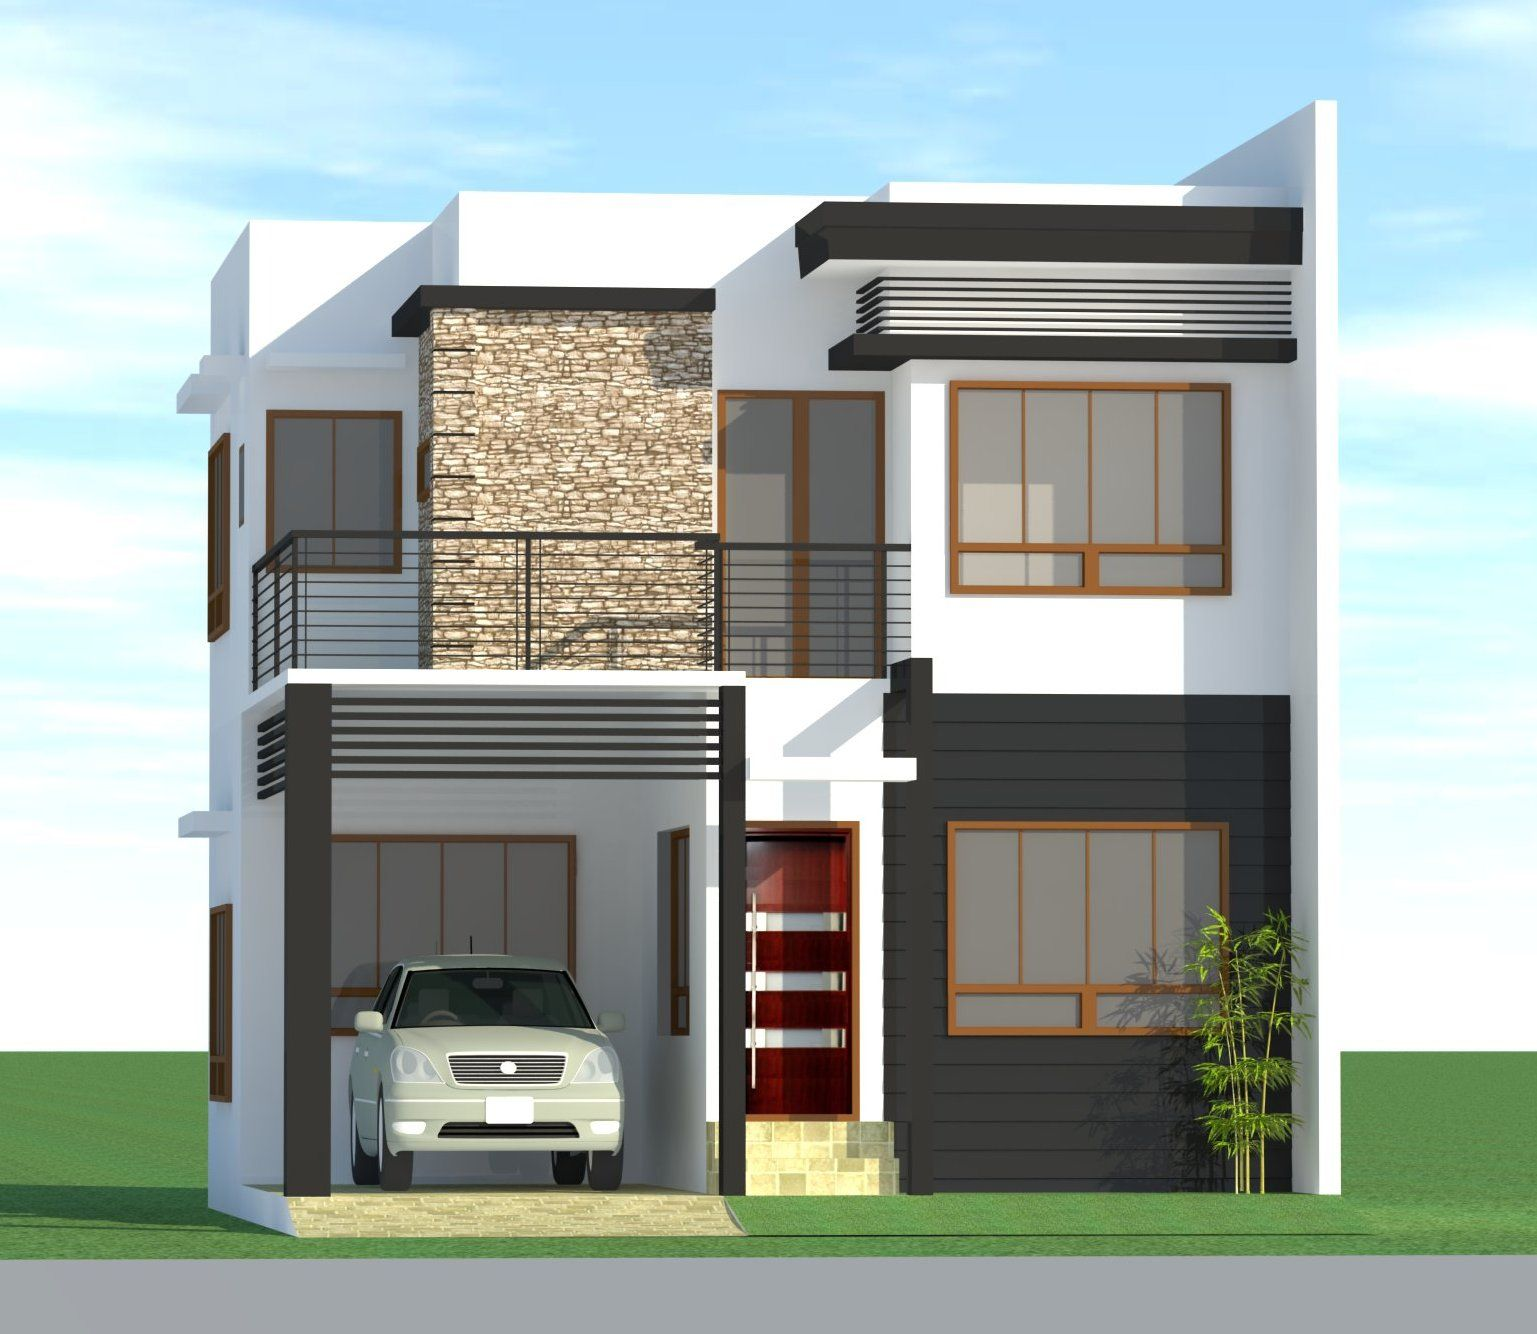 Philippines house design images 3 home design ideas for House elevation models